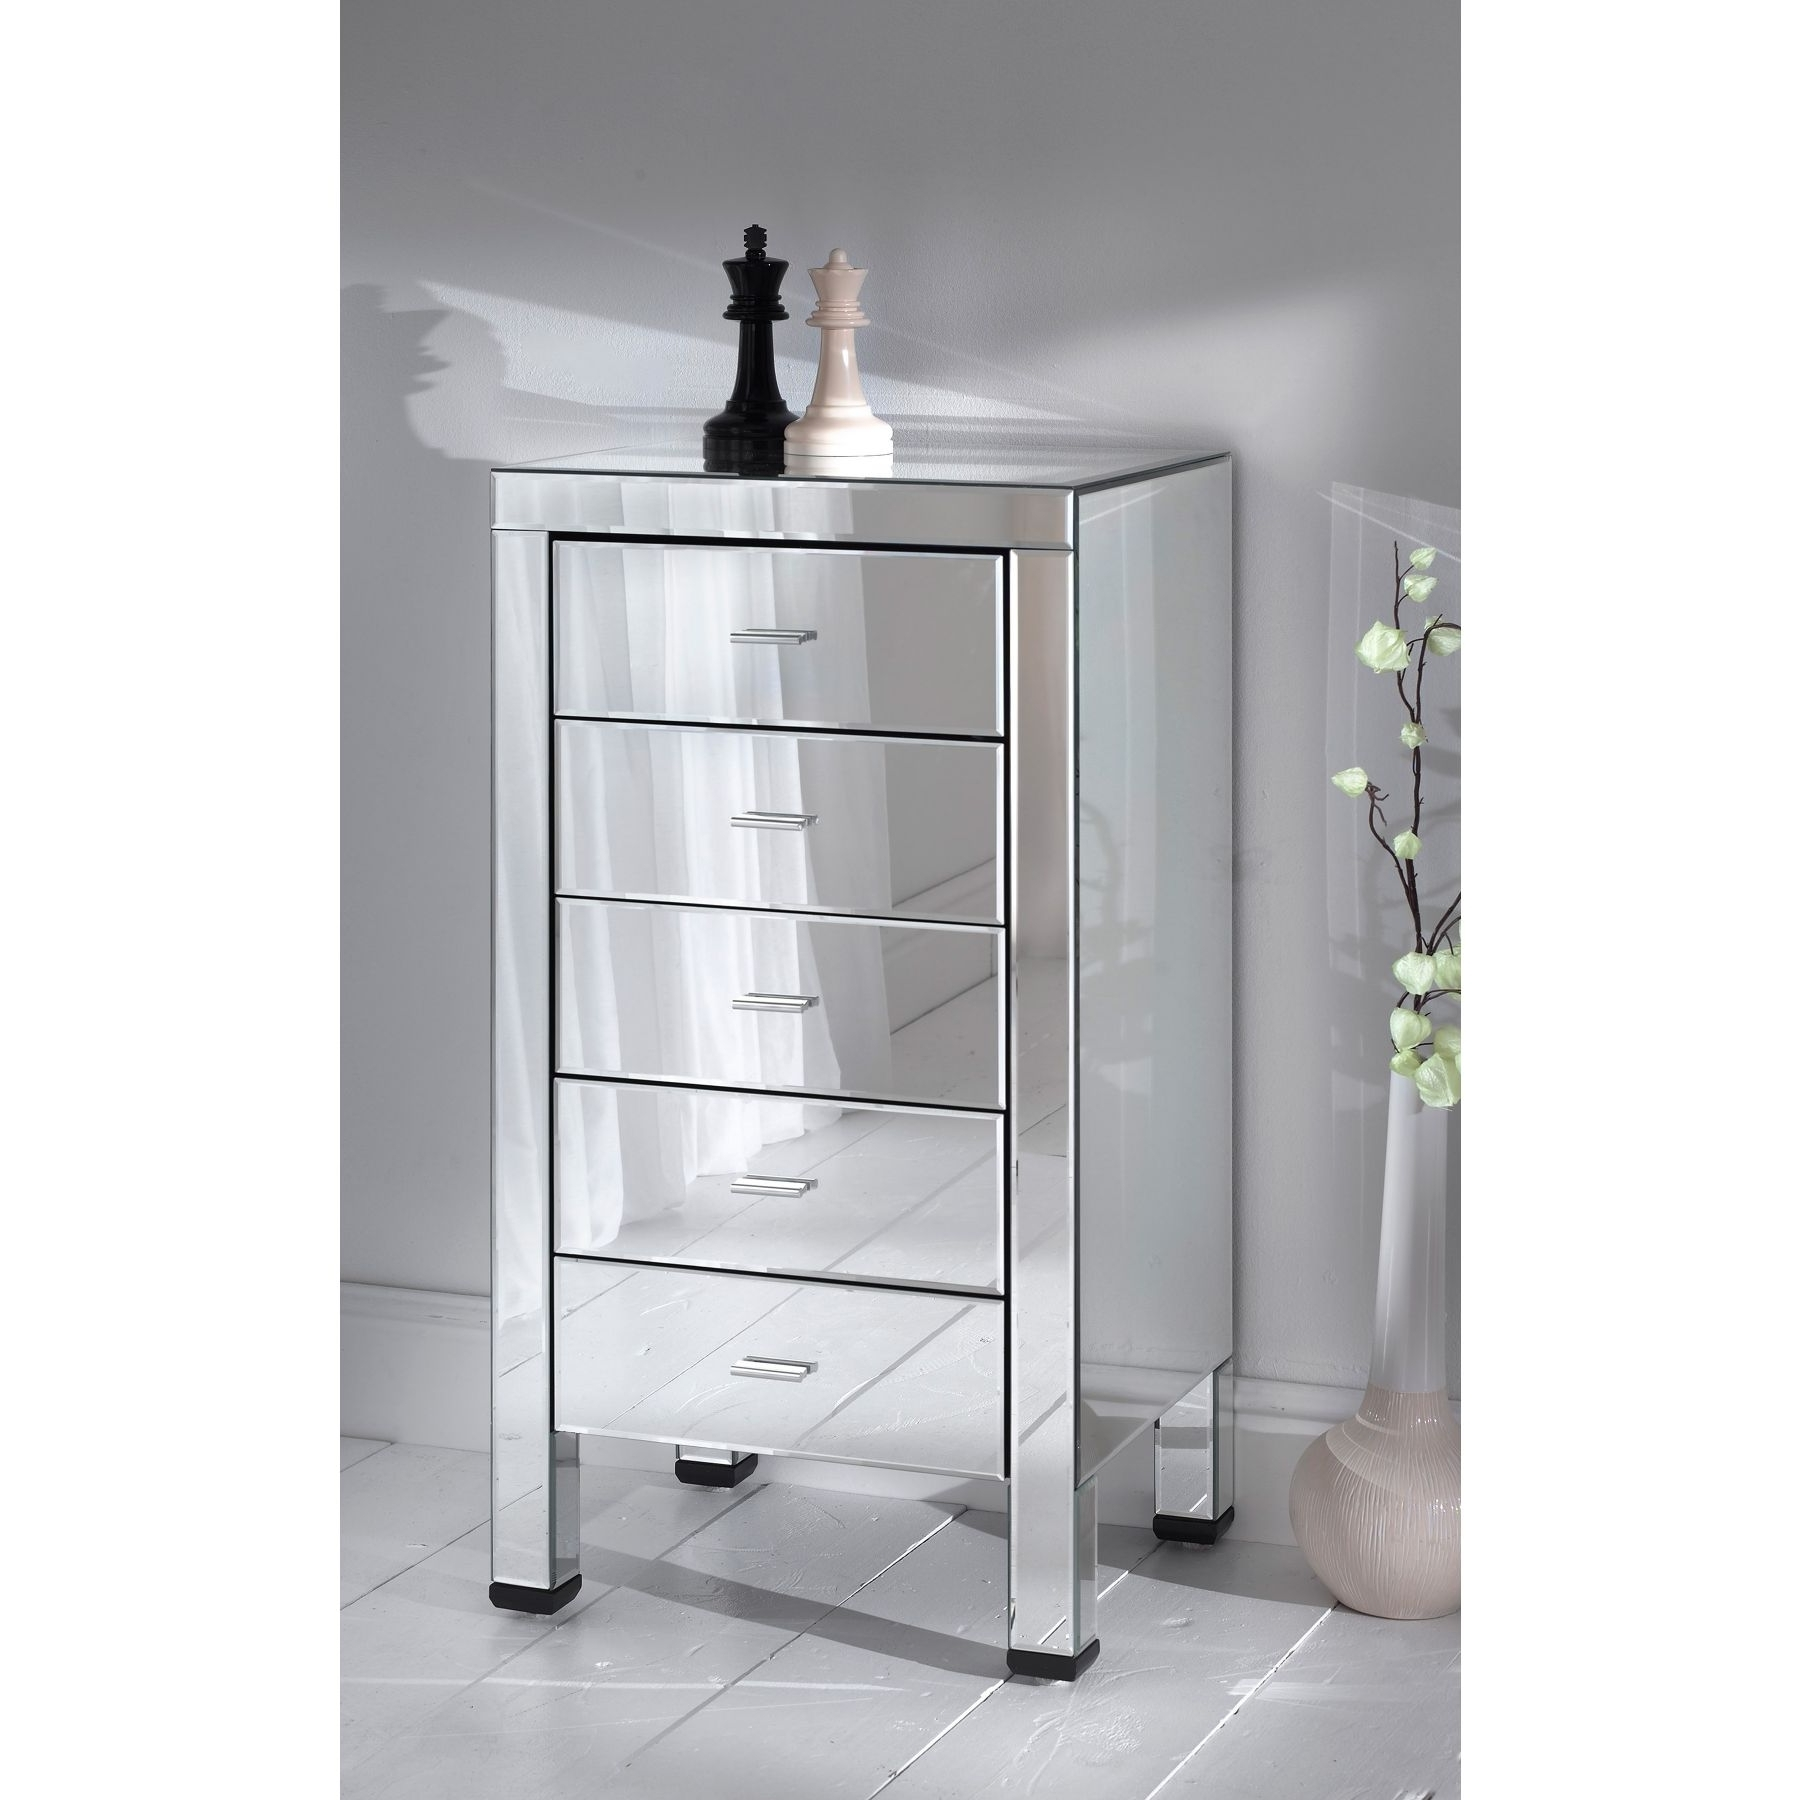 Romano Mirrored Wardrobes Intended For Best And Newest Romano Mirrored Bundle Deal #2 – French Furniture From Homesdirect (View 11 of 15)